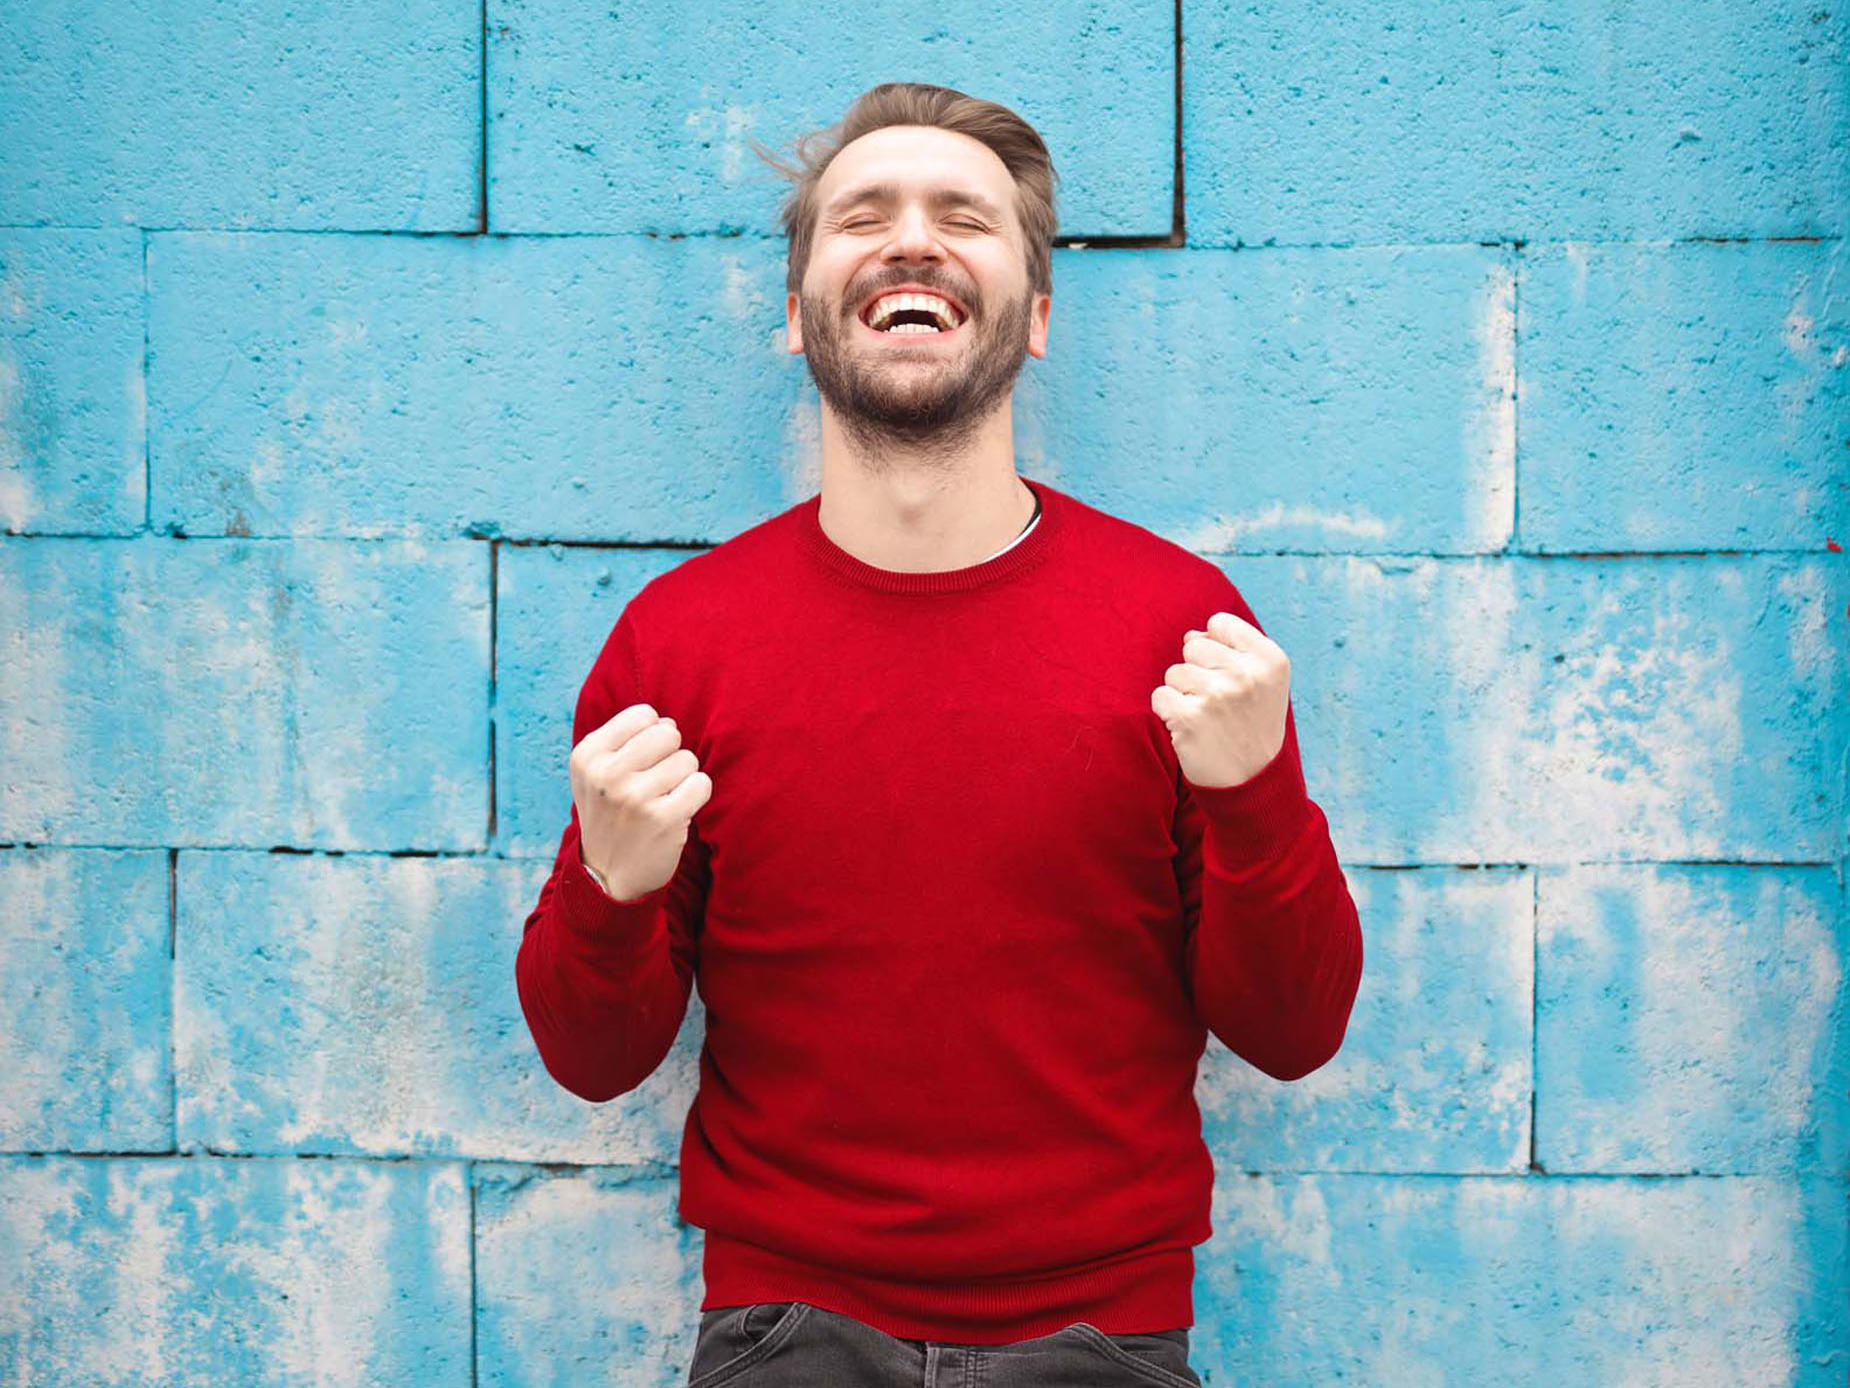 Man excited with fist clenched standing against blue brick wall